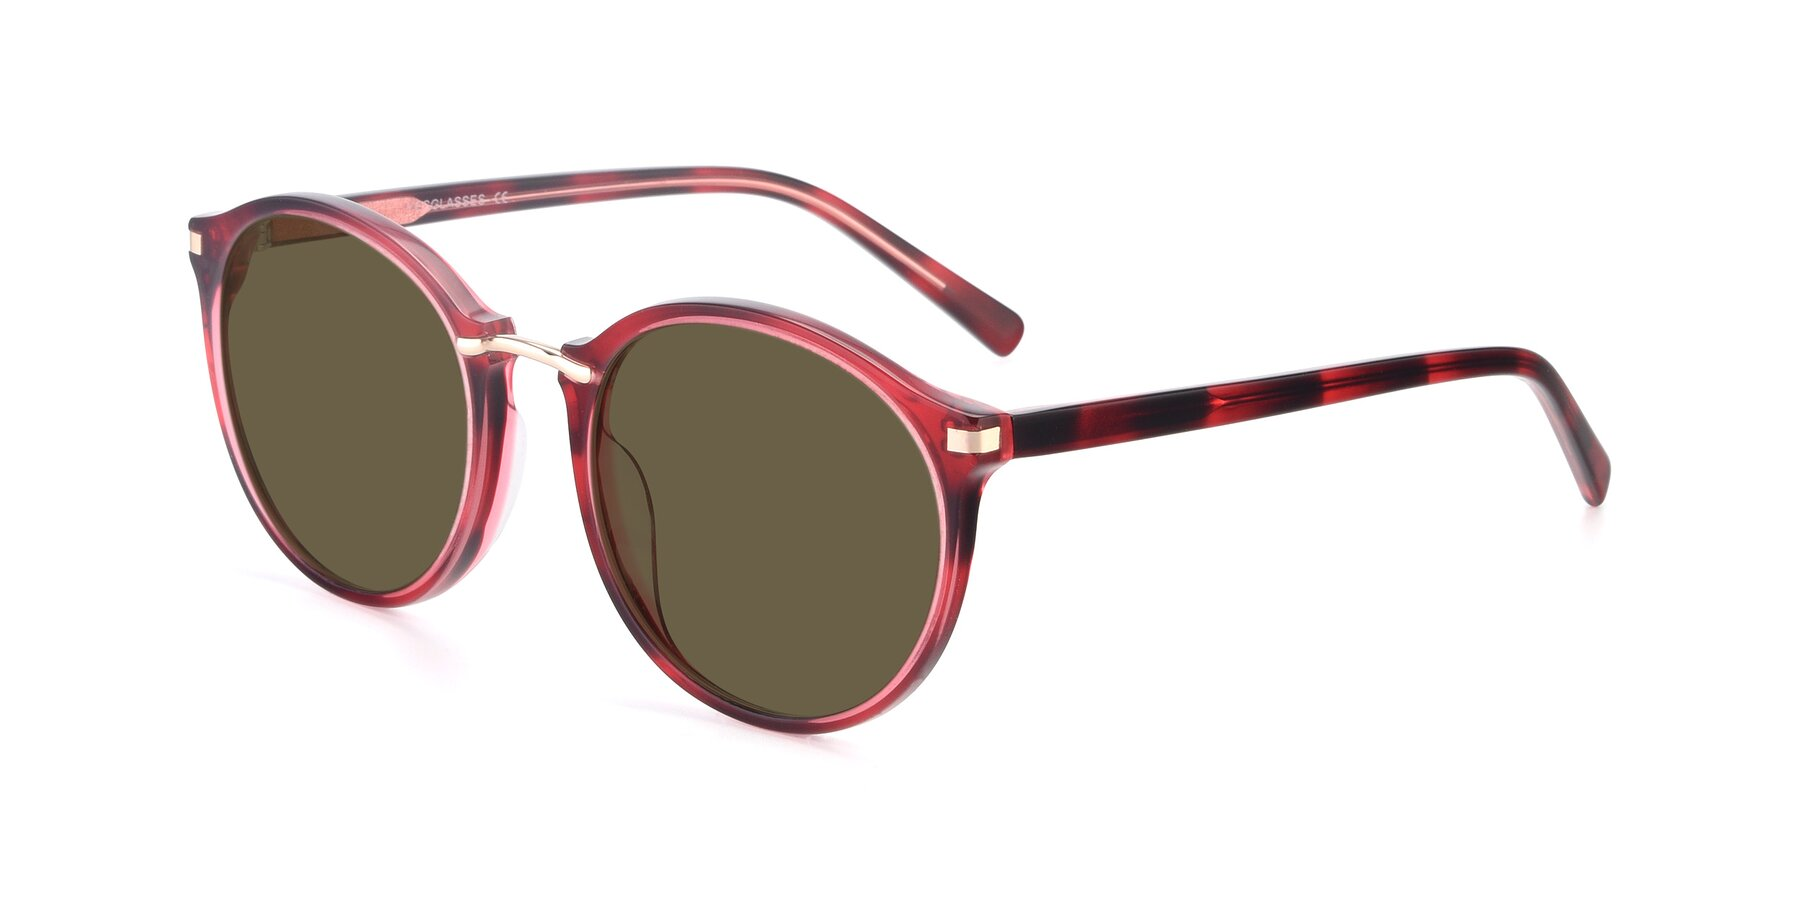 Angle of 17582 in Wine with Brown Polarized Lenses